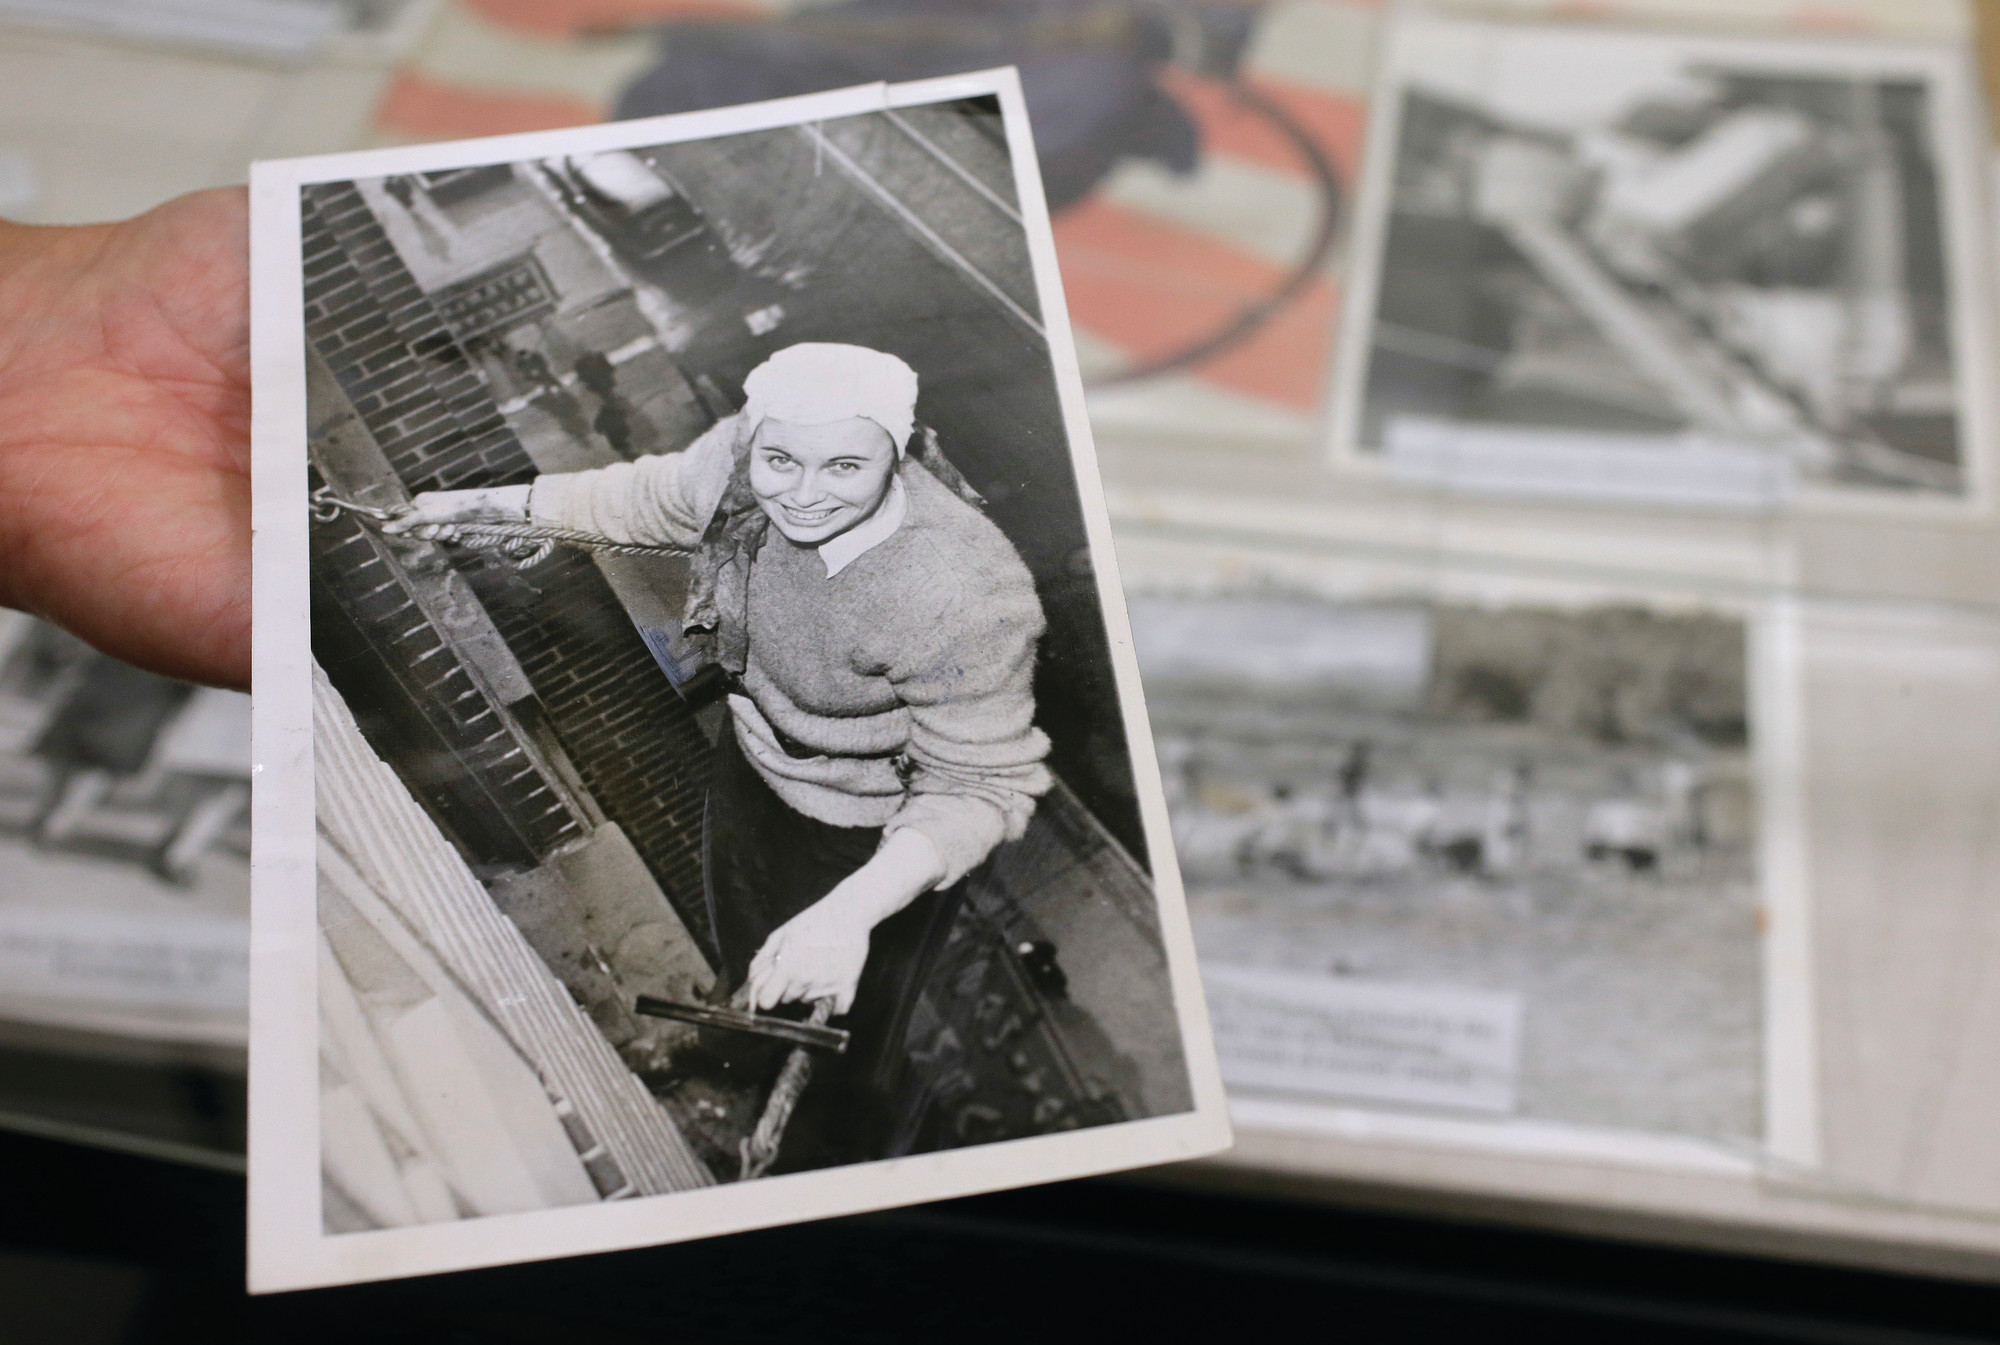 PHOTOS BY THE ASSOCIATED PRESSSue Wilkins, director of education at The International Museum of World War II, holds a 1945 newspaper photograph at the museum in Natick, Massachusetts, that shows Fern Corbett, 24, working as a window washer 10 floors above a Minneapolis street during World War II.